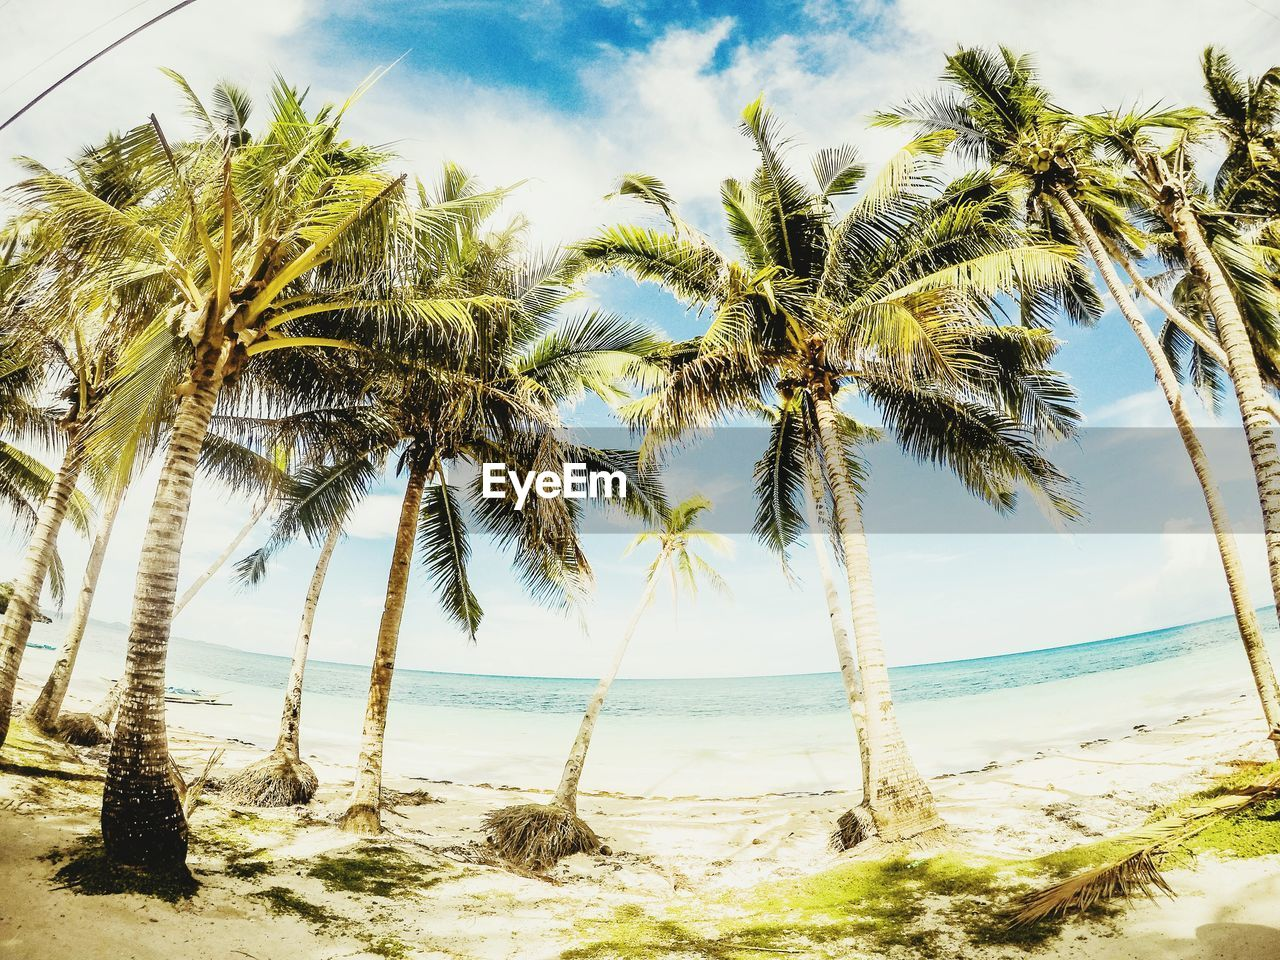 Beeeeeaacchh Palm Tree Beach Sea Water Tree Sand Cloud - Sky Nature Tropical Climate Sky Landscape Scenics Beauty In Nature Day Growth Outdoors No People Wanderlust Exploring Vacations Explore The World Lifeofadventure Neverstopexploring  Horizon Over Water